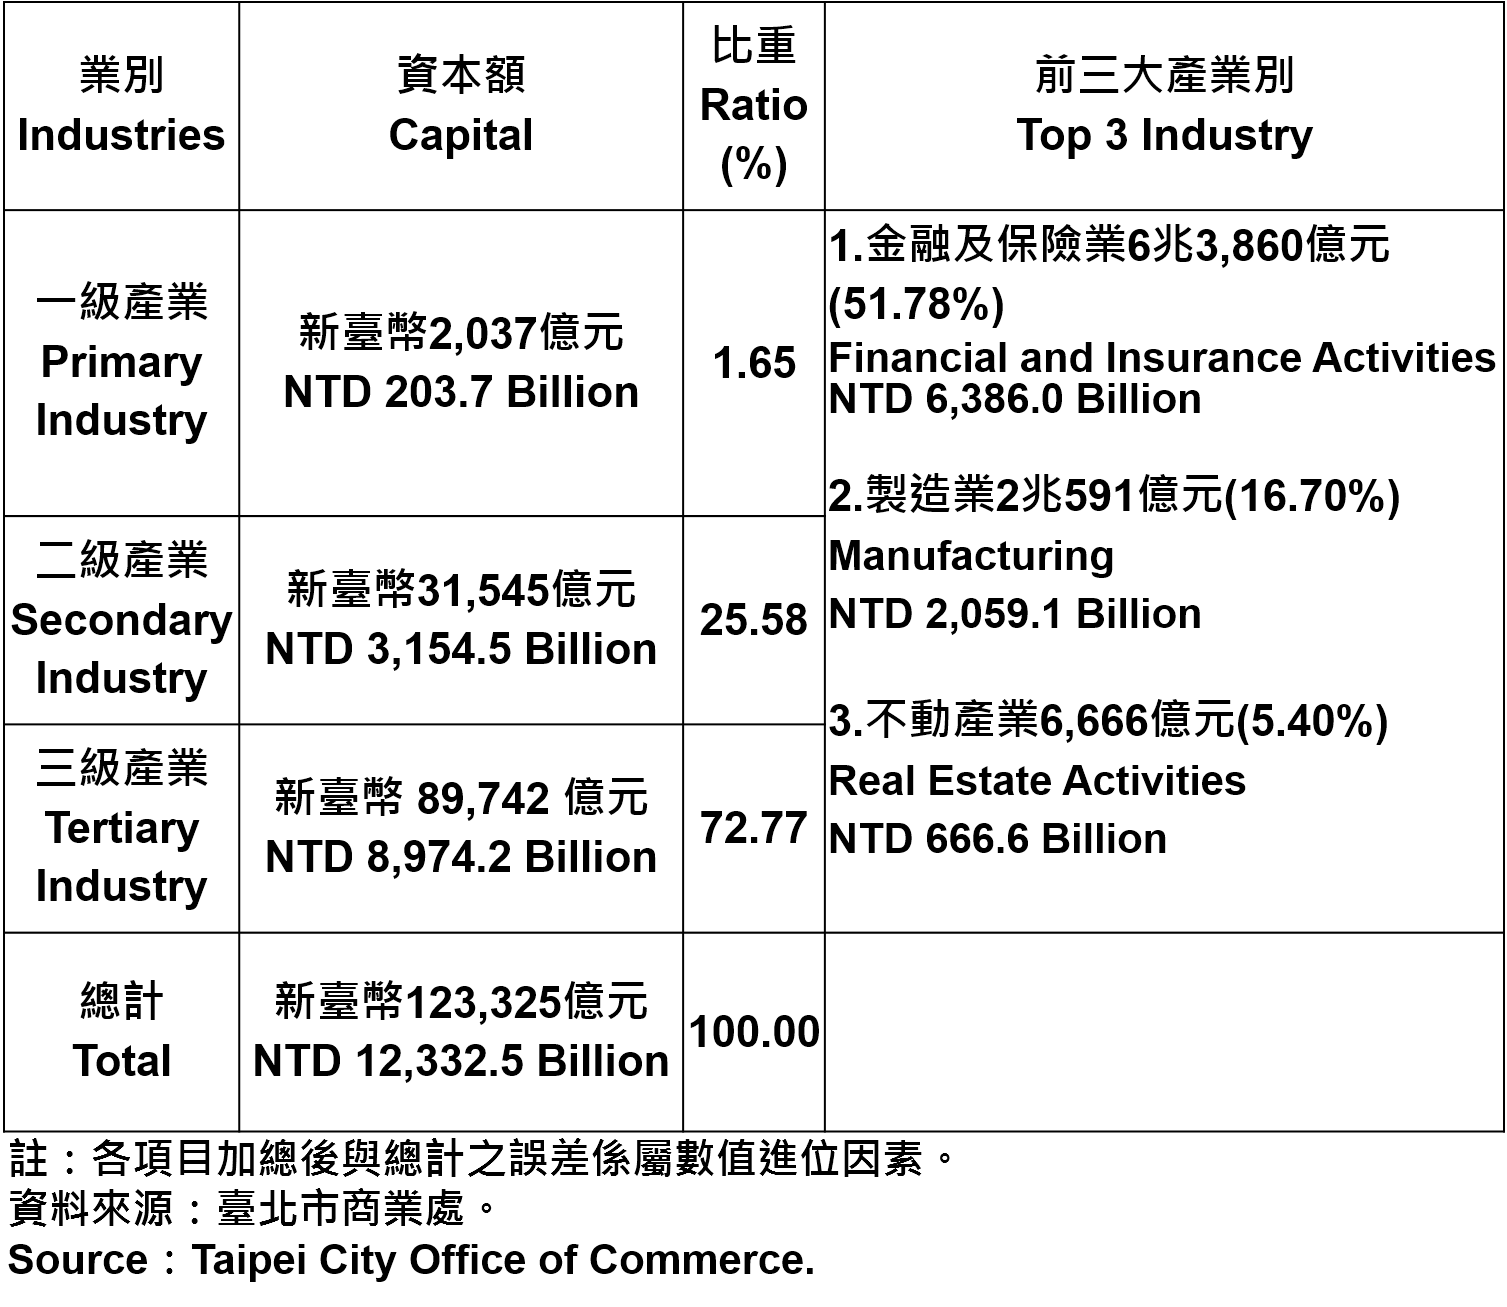 臺北市登記之公司資本總額—2018Q3 Capital for the Companies and Firms Registered in Taipei City—2018Q3